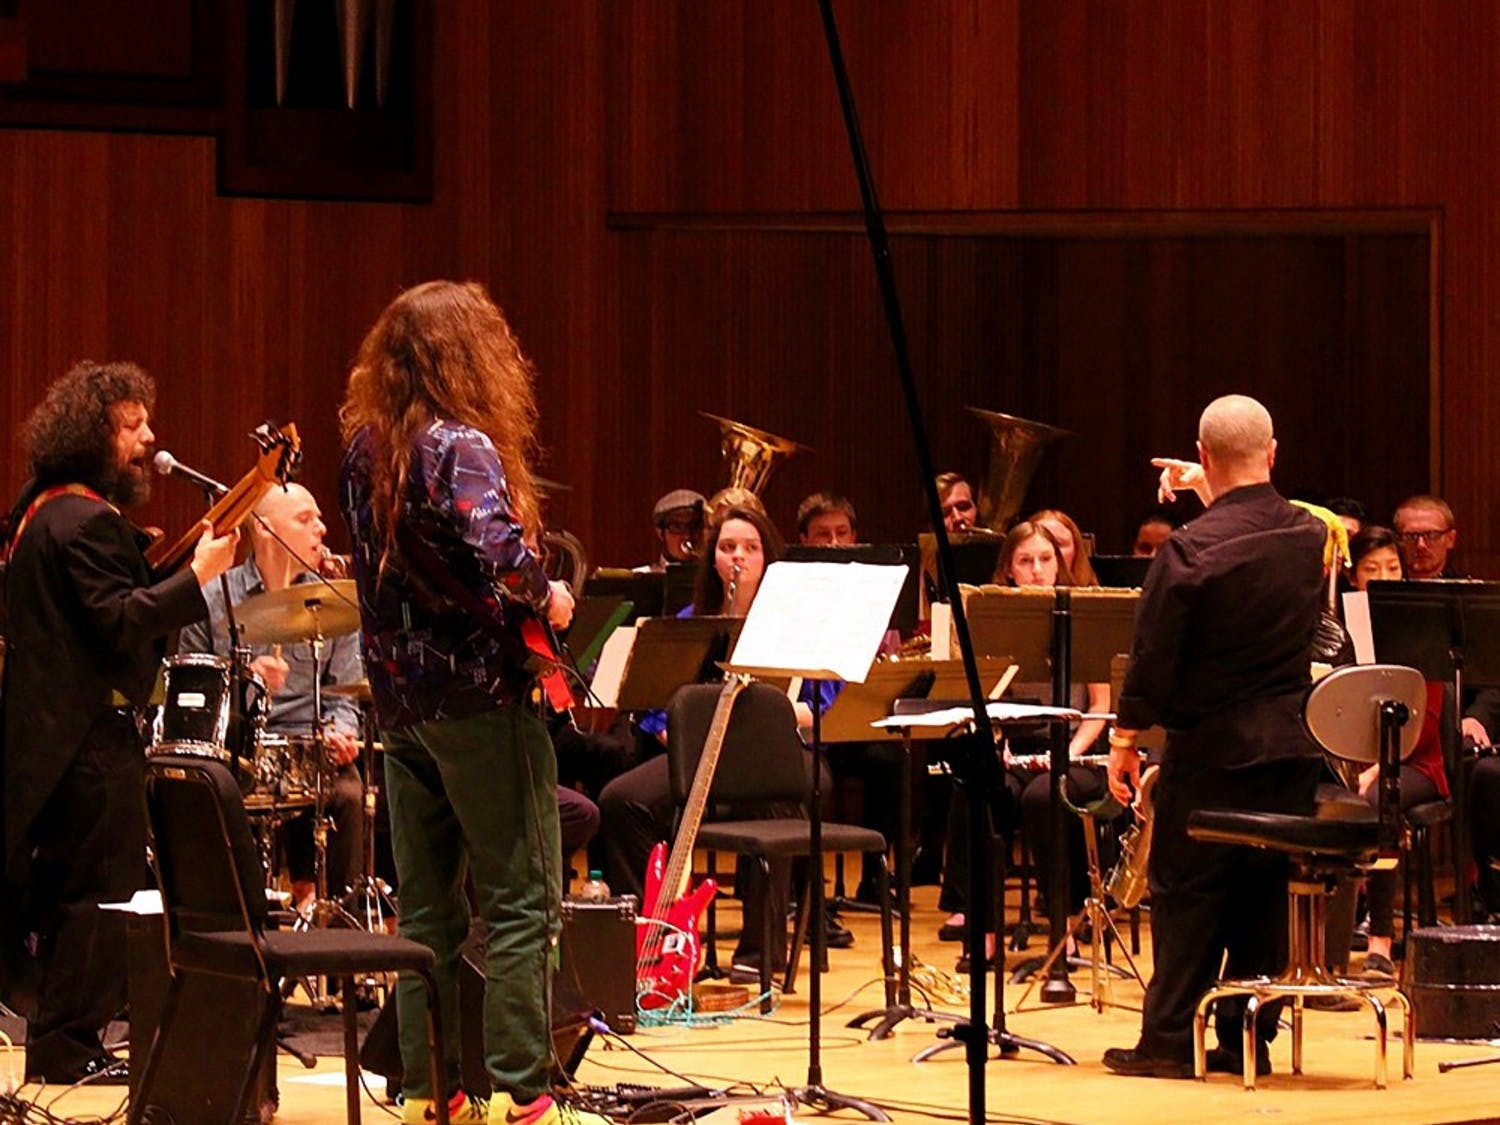 The UB Concert Band, led by Director Jon Nelson, and the Genkin Philharmonic took the stage at Slee Recital Hall Tuesday night. The two groups put on an exciting show, despite their visible differences.